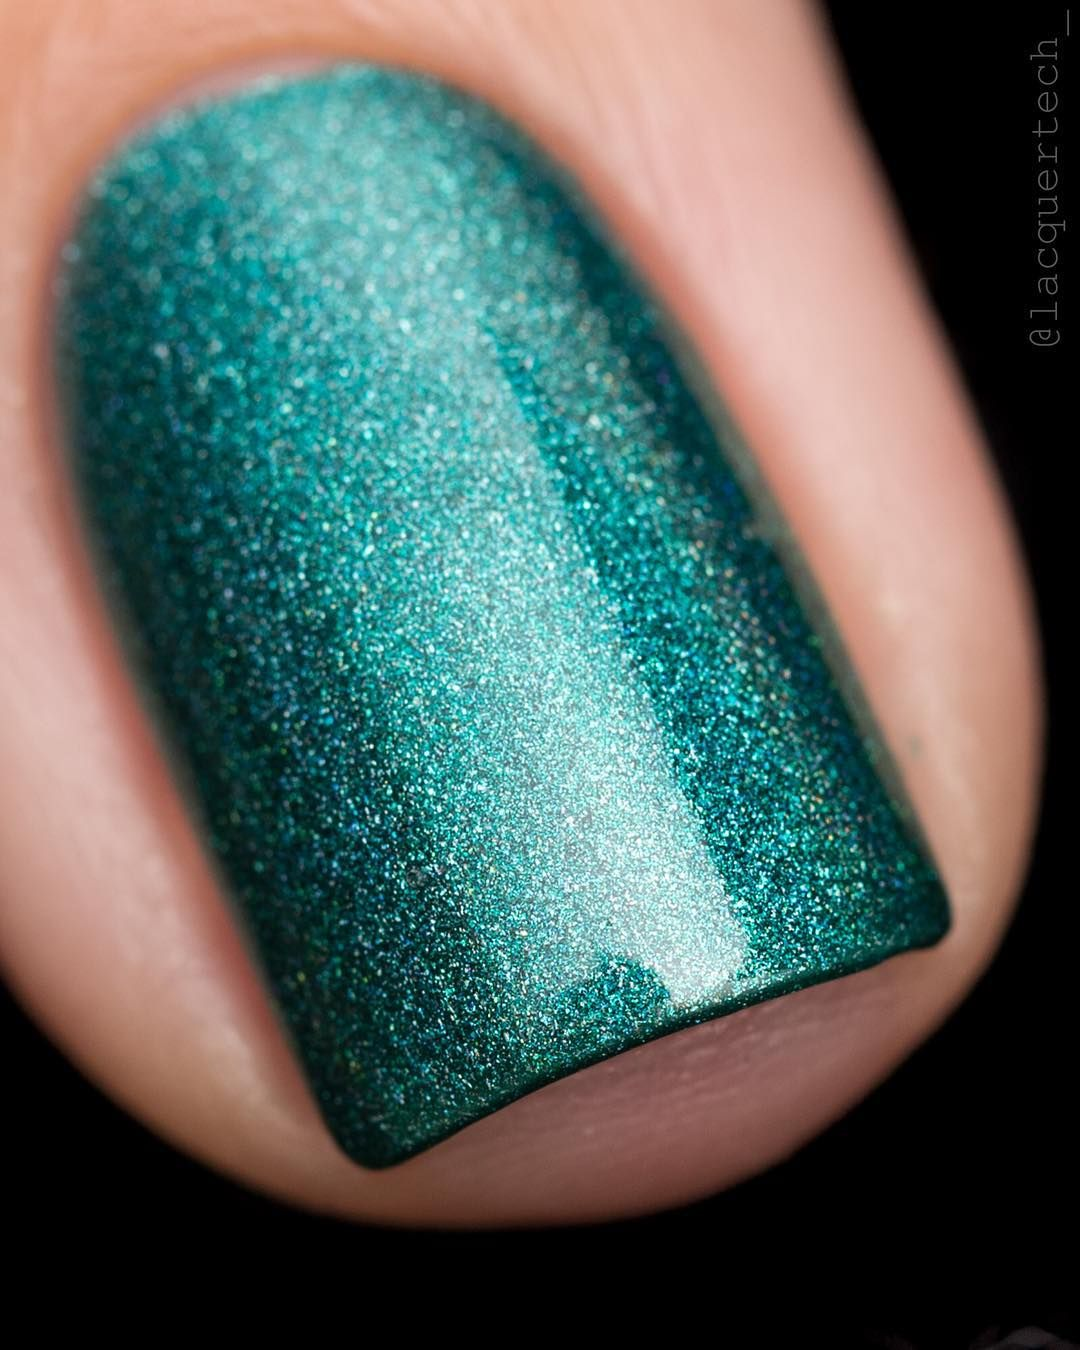 Not Only New Nail Polishes Are Interesting Right Cirquecolors La Tropicale Studio Photos But Without Retouch At A New Nail Polish Nail Polish Photo Studio